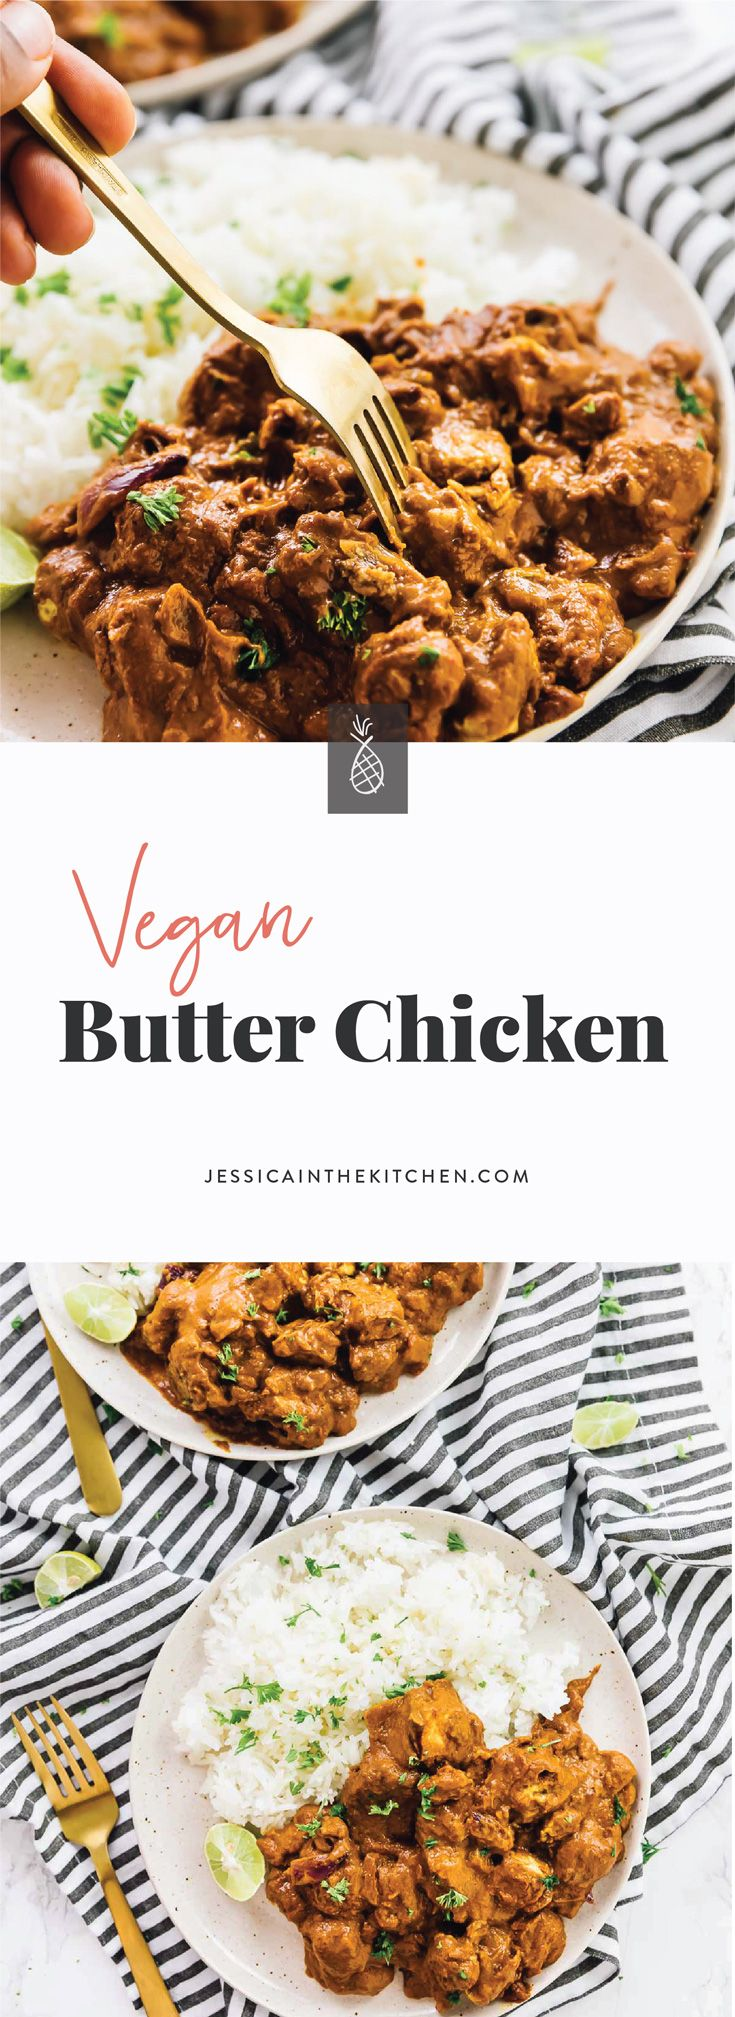 1032 best jessica in the kitchen recipes images on Pinterest ...